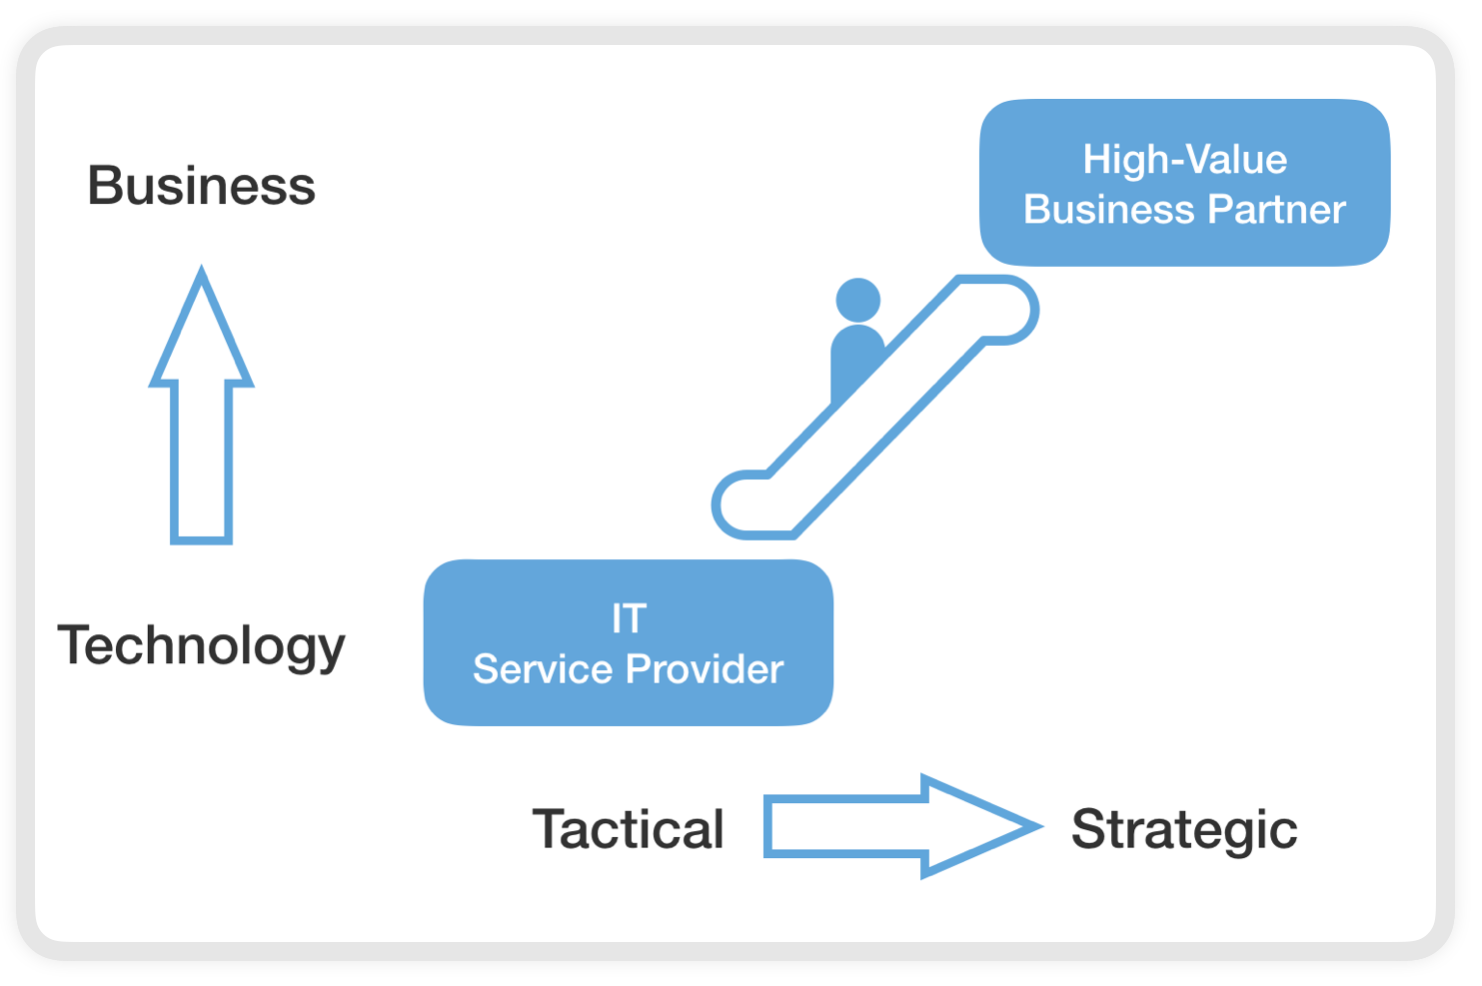 High-Value Business Journey